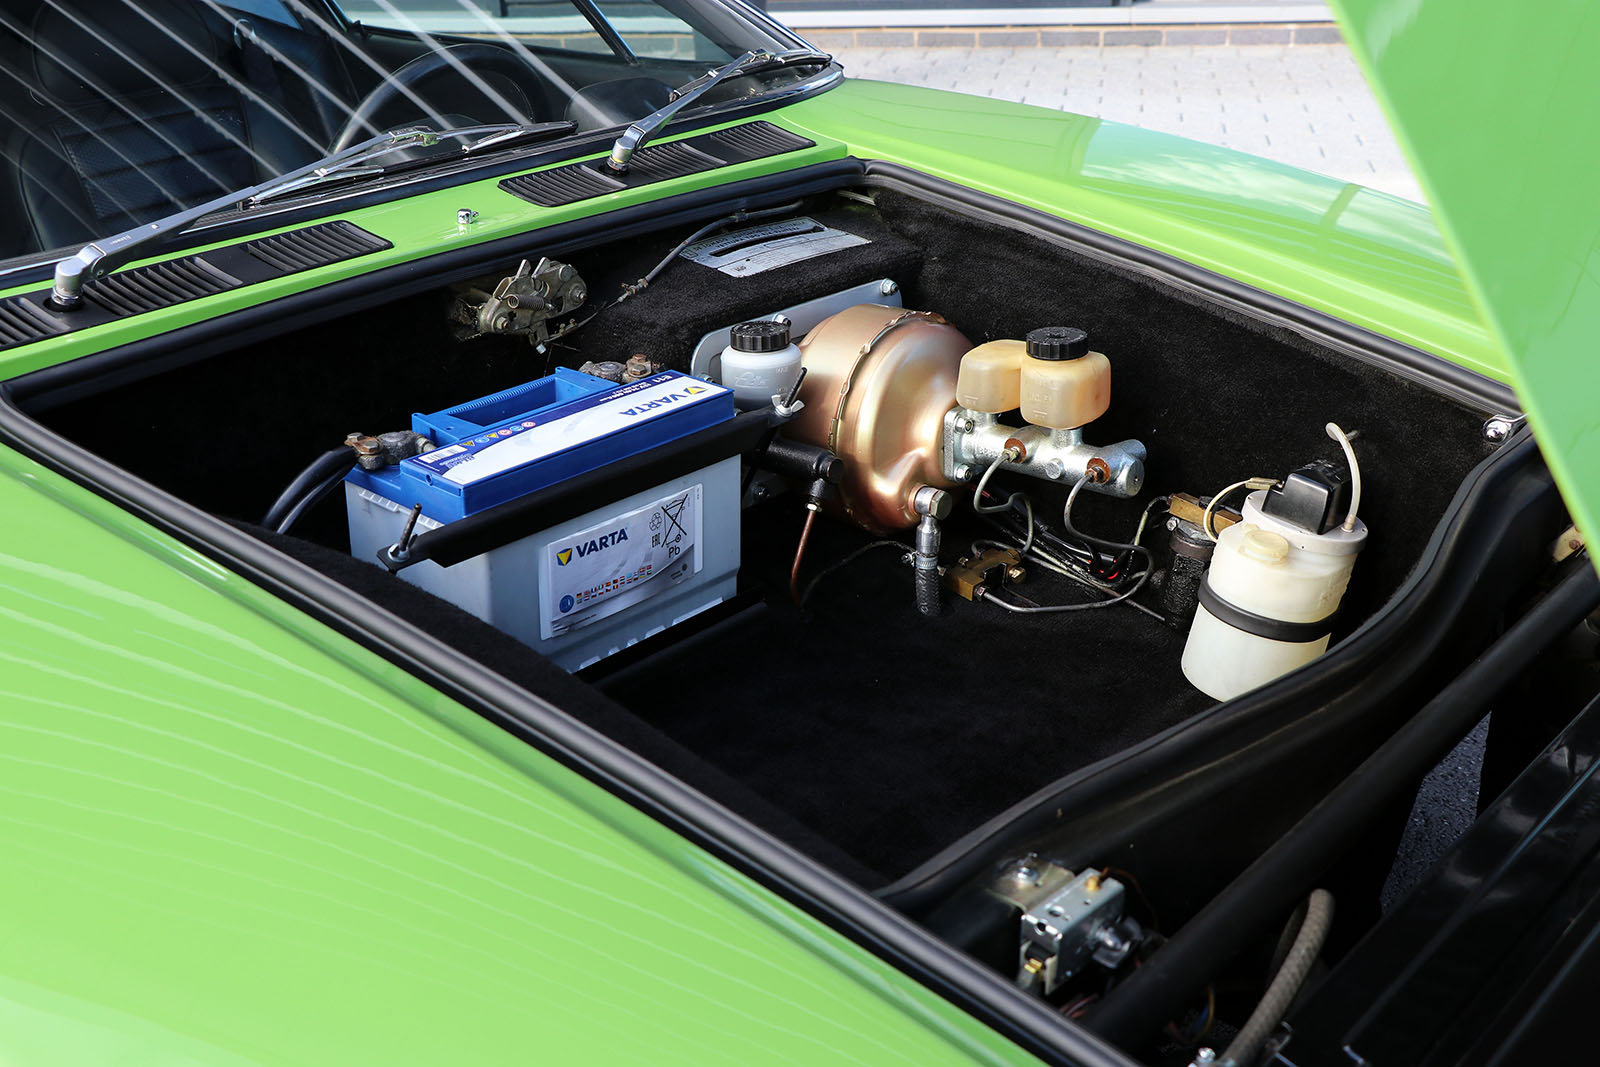 For Sale UK Fully Restored 1972 De Tomaso Pantera For Sale (picture 5 of 6)